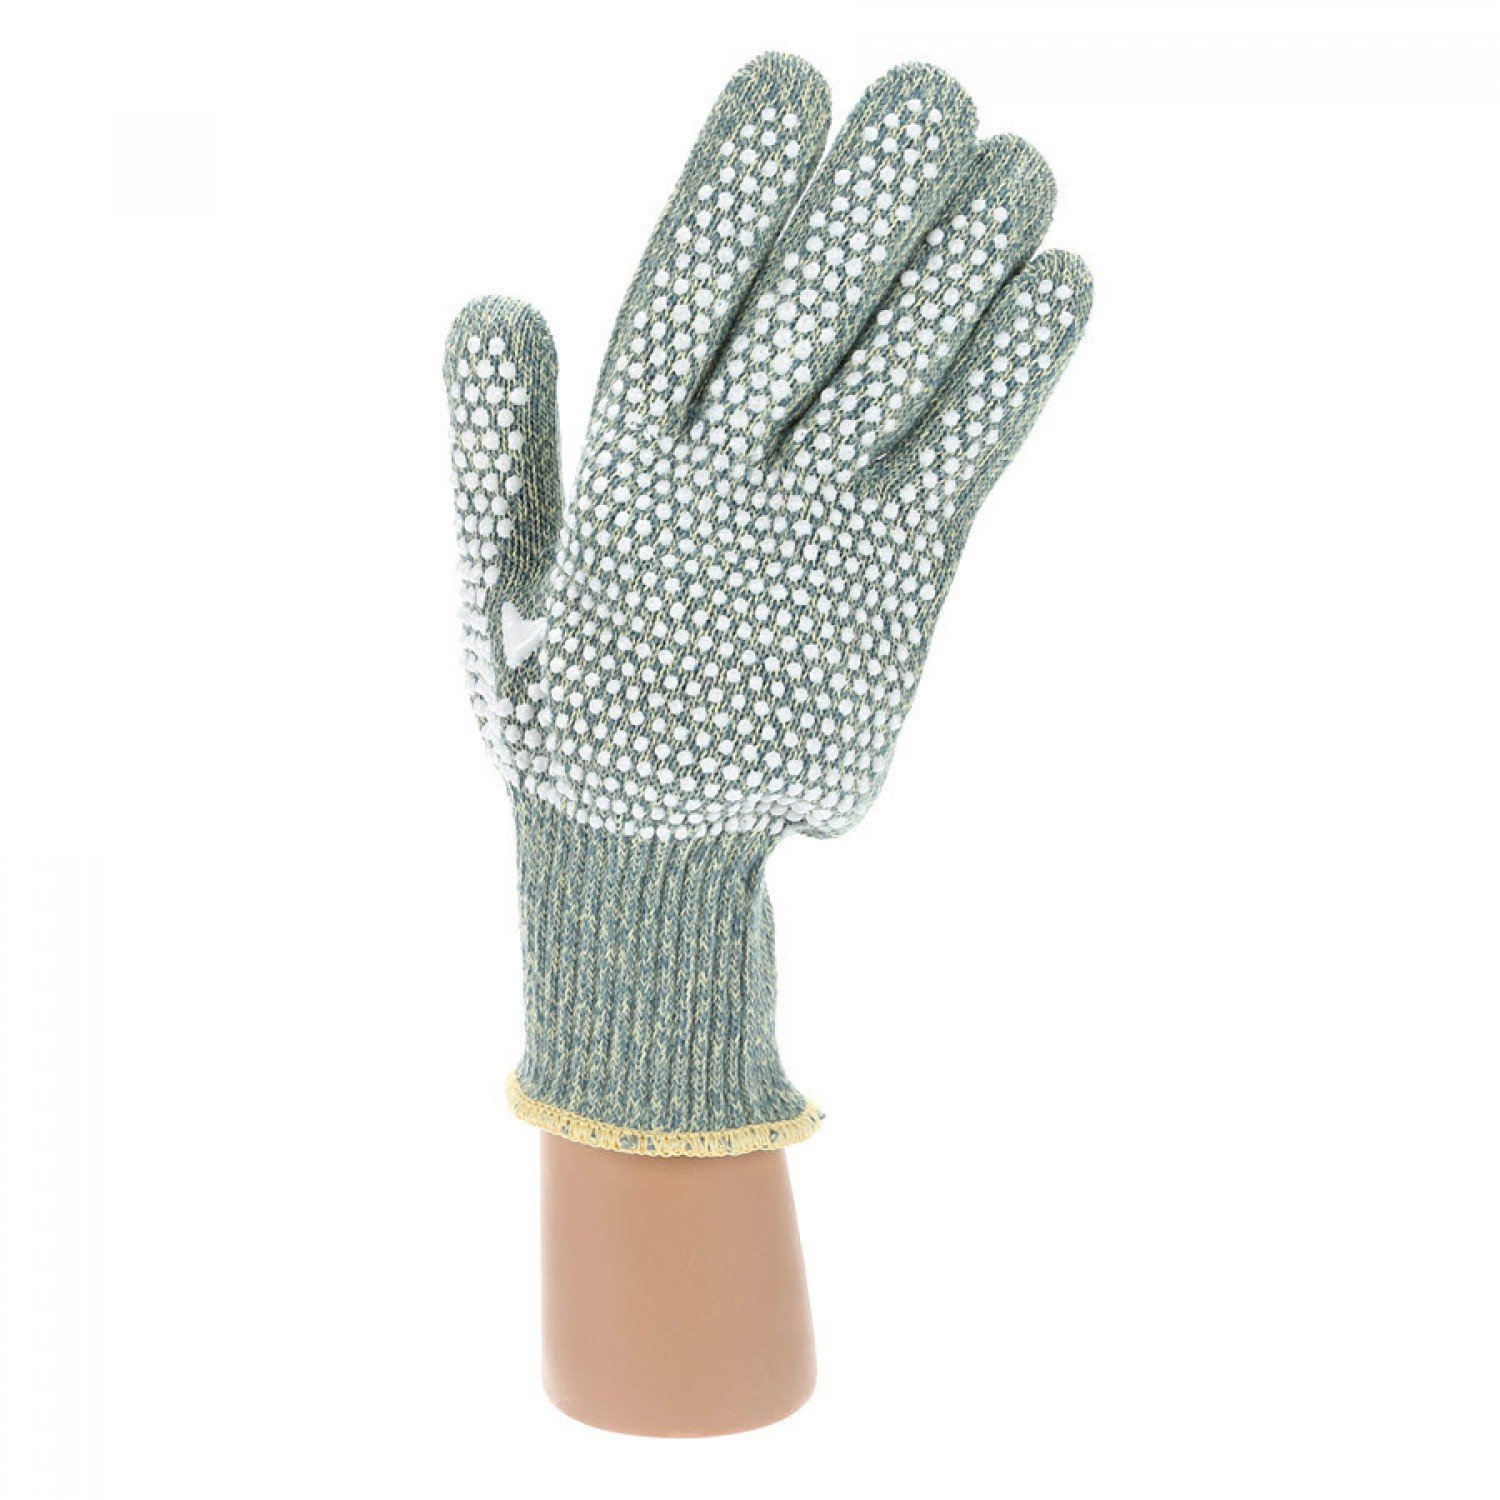 Klutz Gloves - Large *